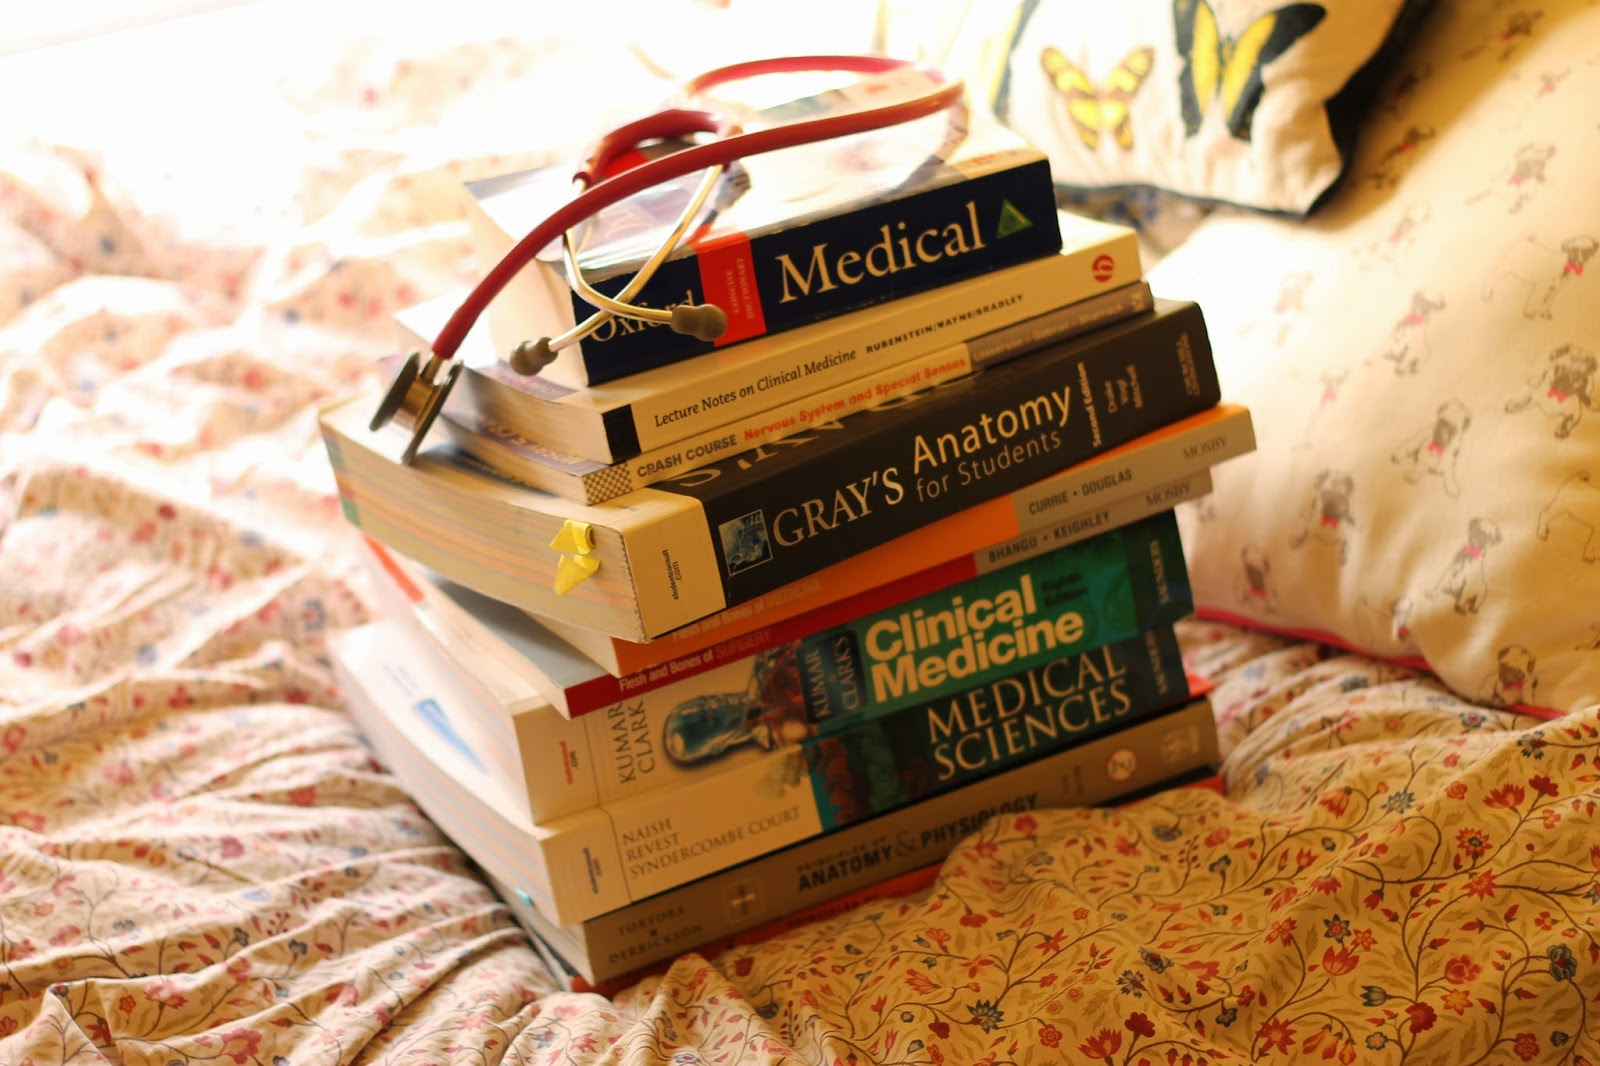 Being a medical student blog